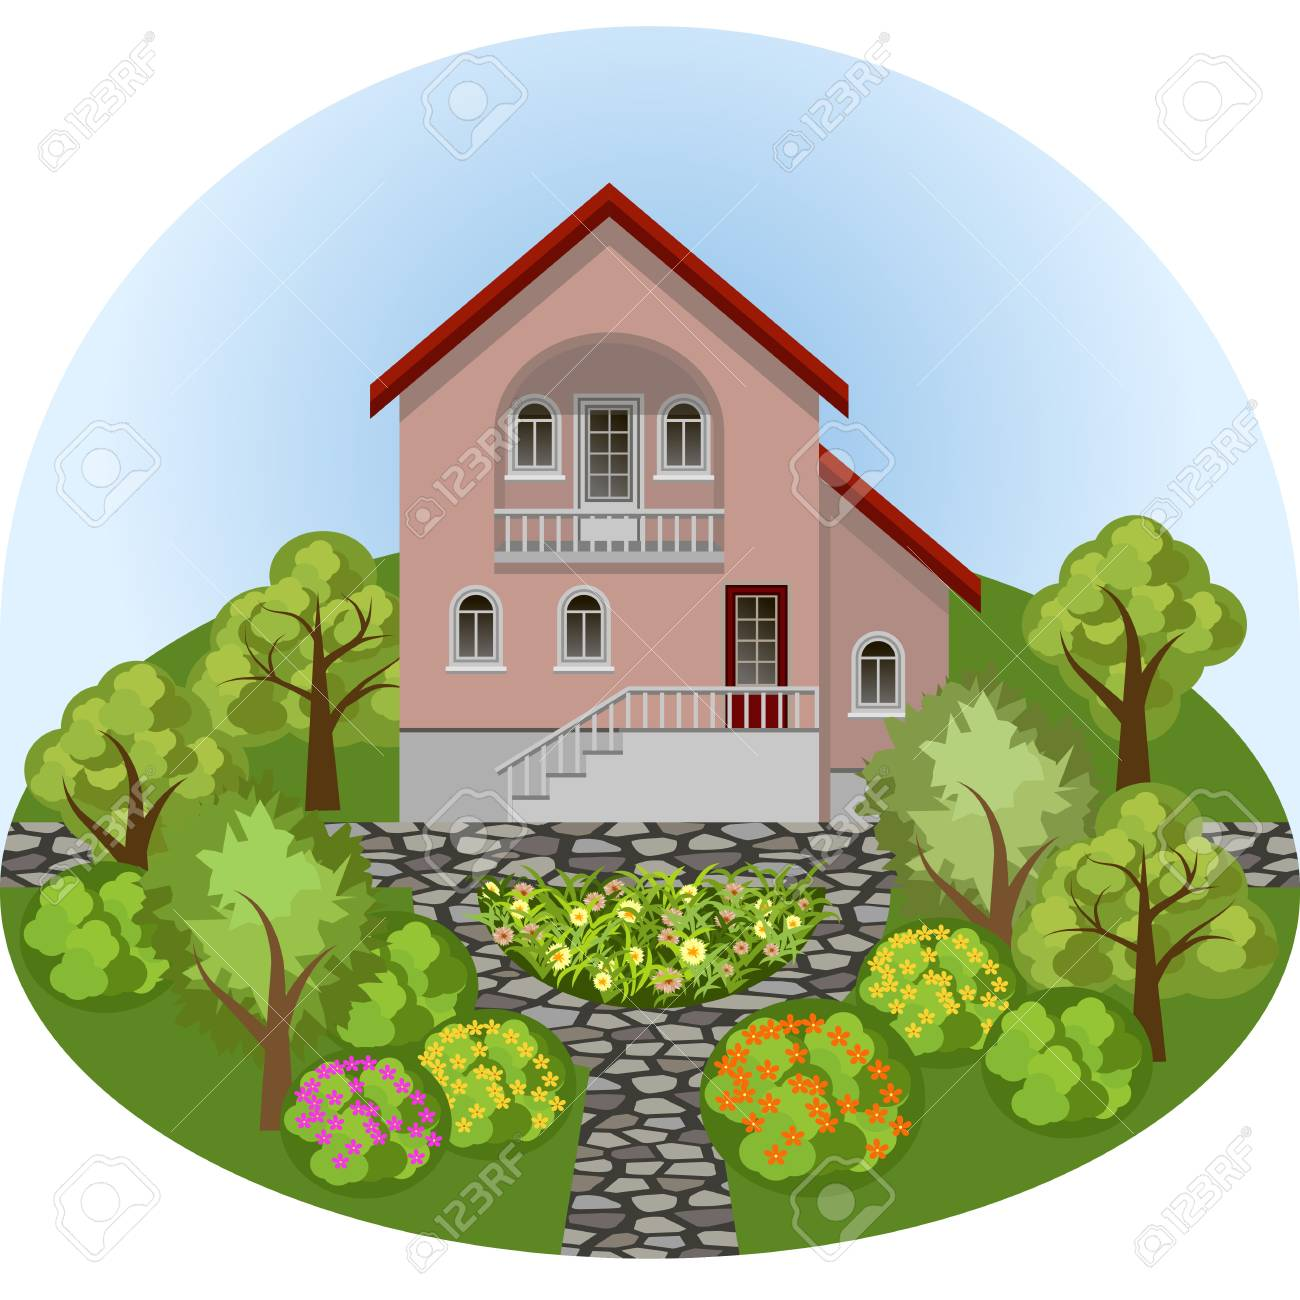 Surprising Family Manor House In Cartoon Summer Garden Landscape With Colorful Download Free Architecture Designs Rallybritishbridgeorg